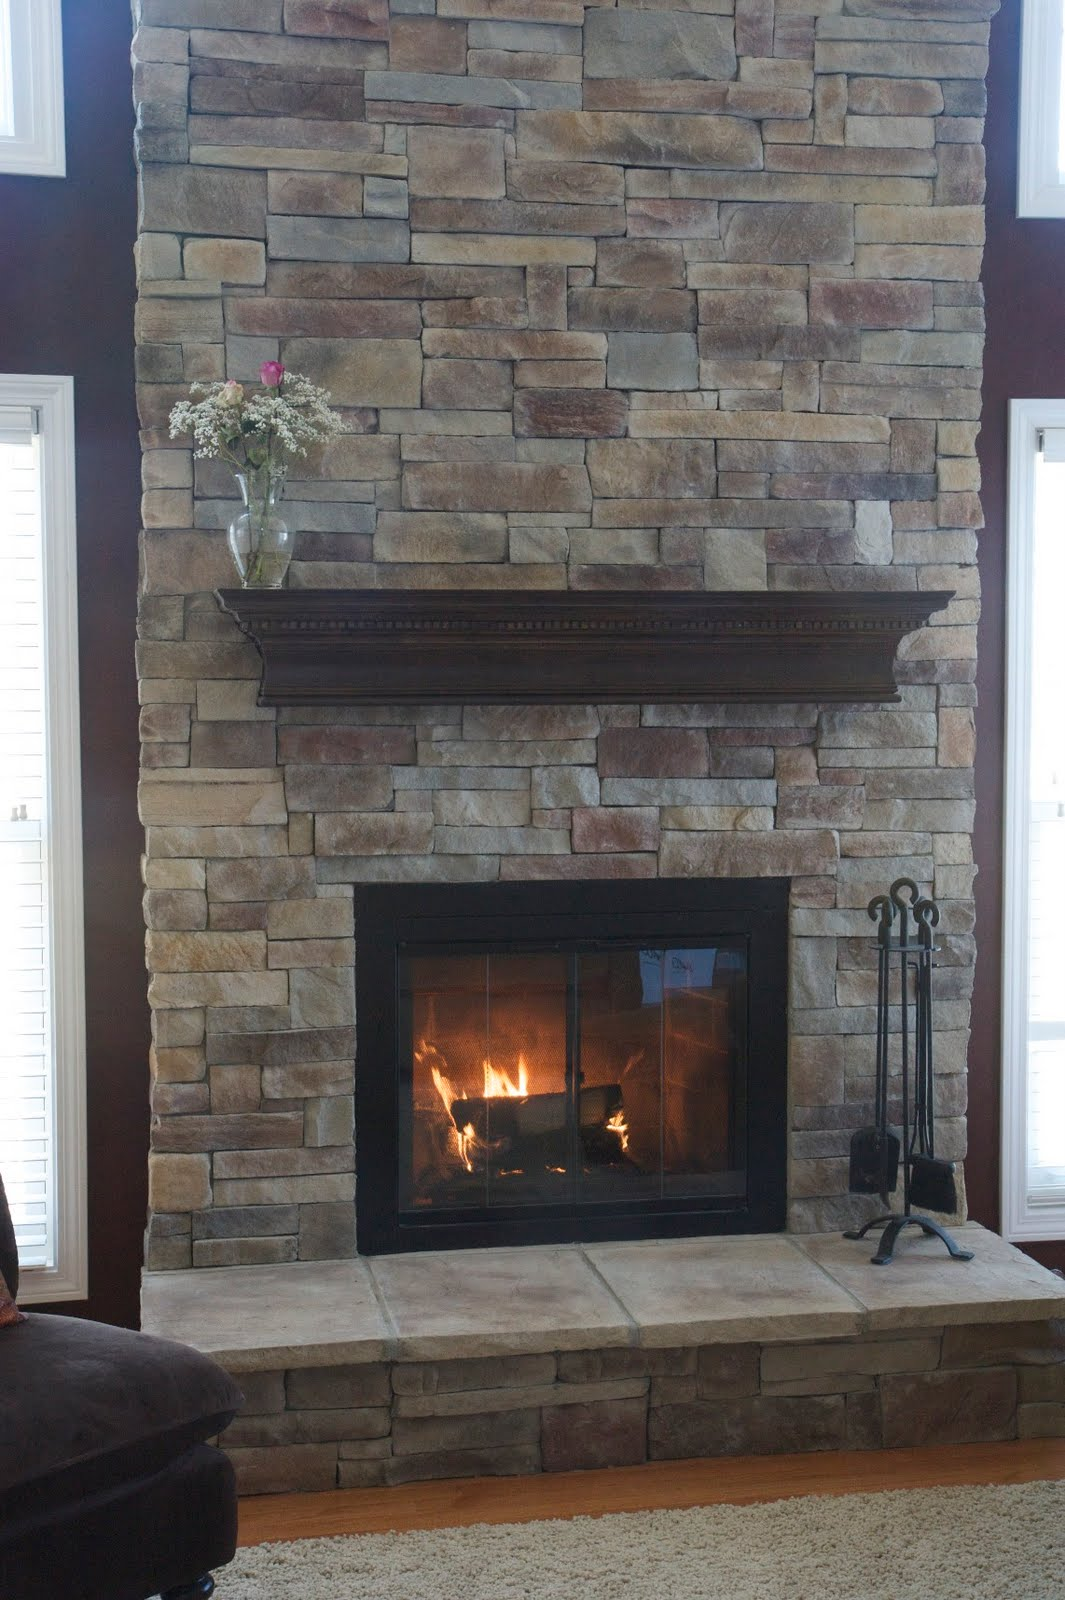 North Star Stone- Stone Fireplaces & Stone Exteriors: Did You Know ...